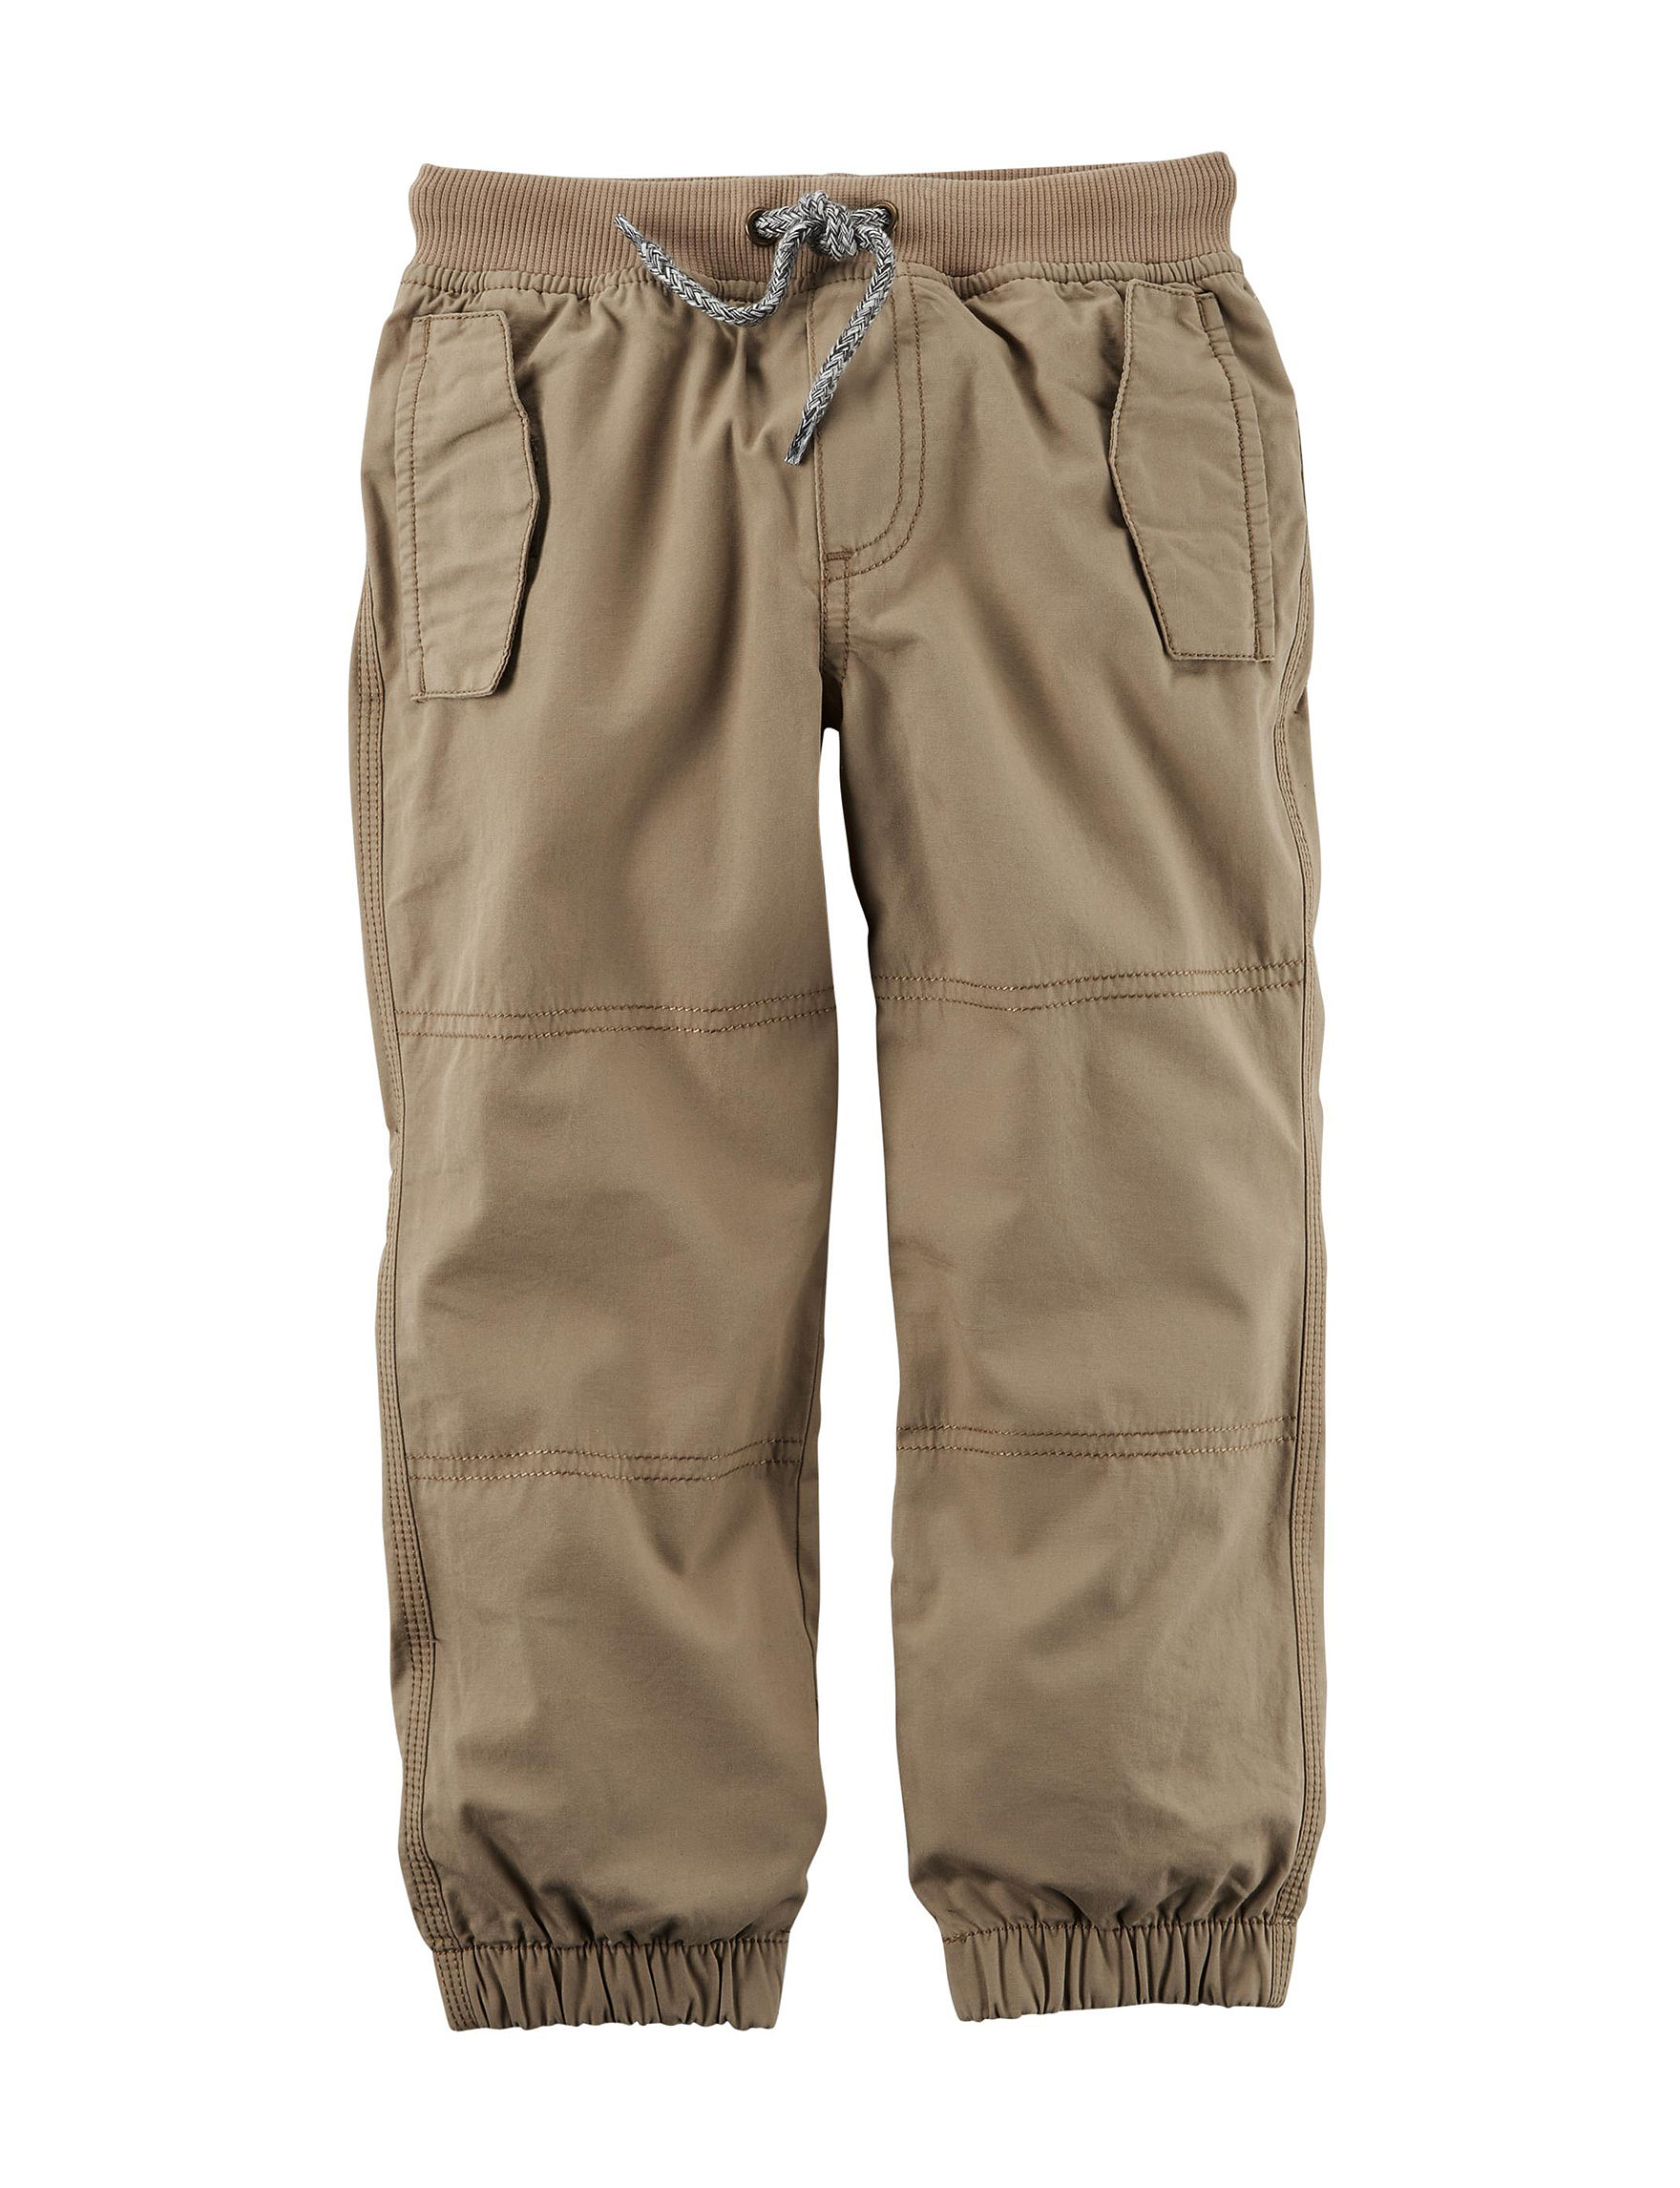 Carter's Beige Soft Pants